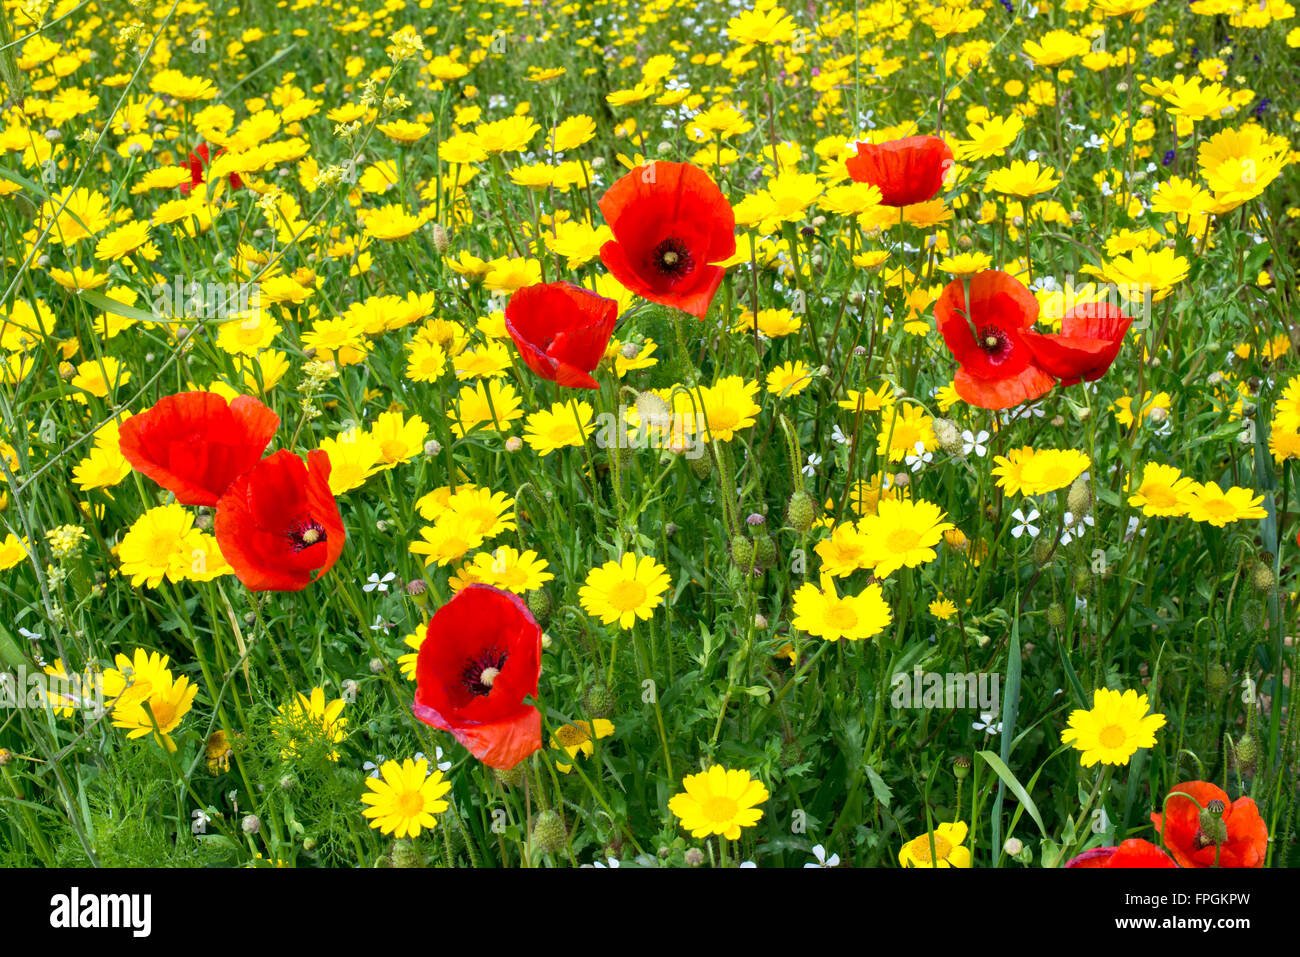 Fields Of Poppies And Other Color Flowers Stock Photo 99941041 Alamy